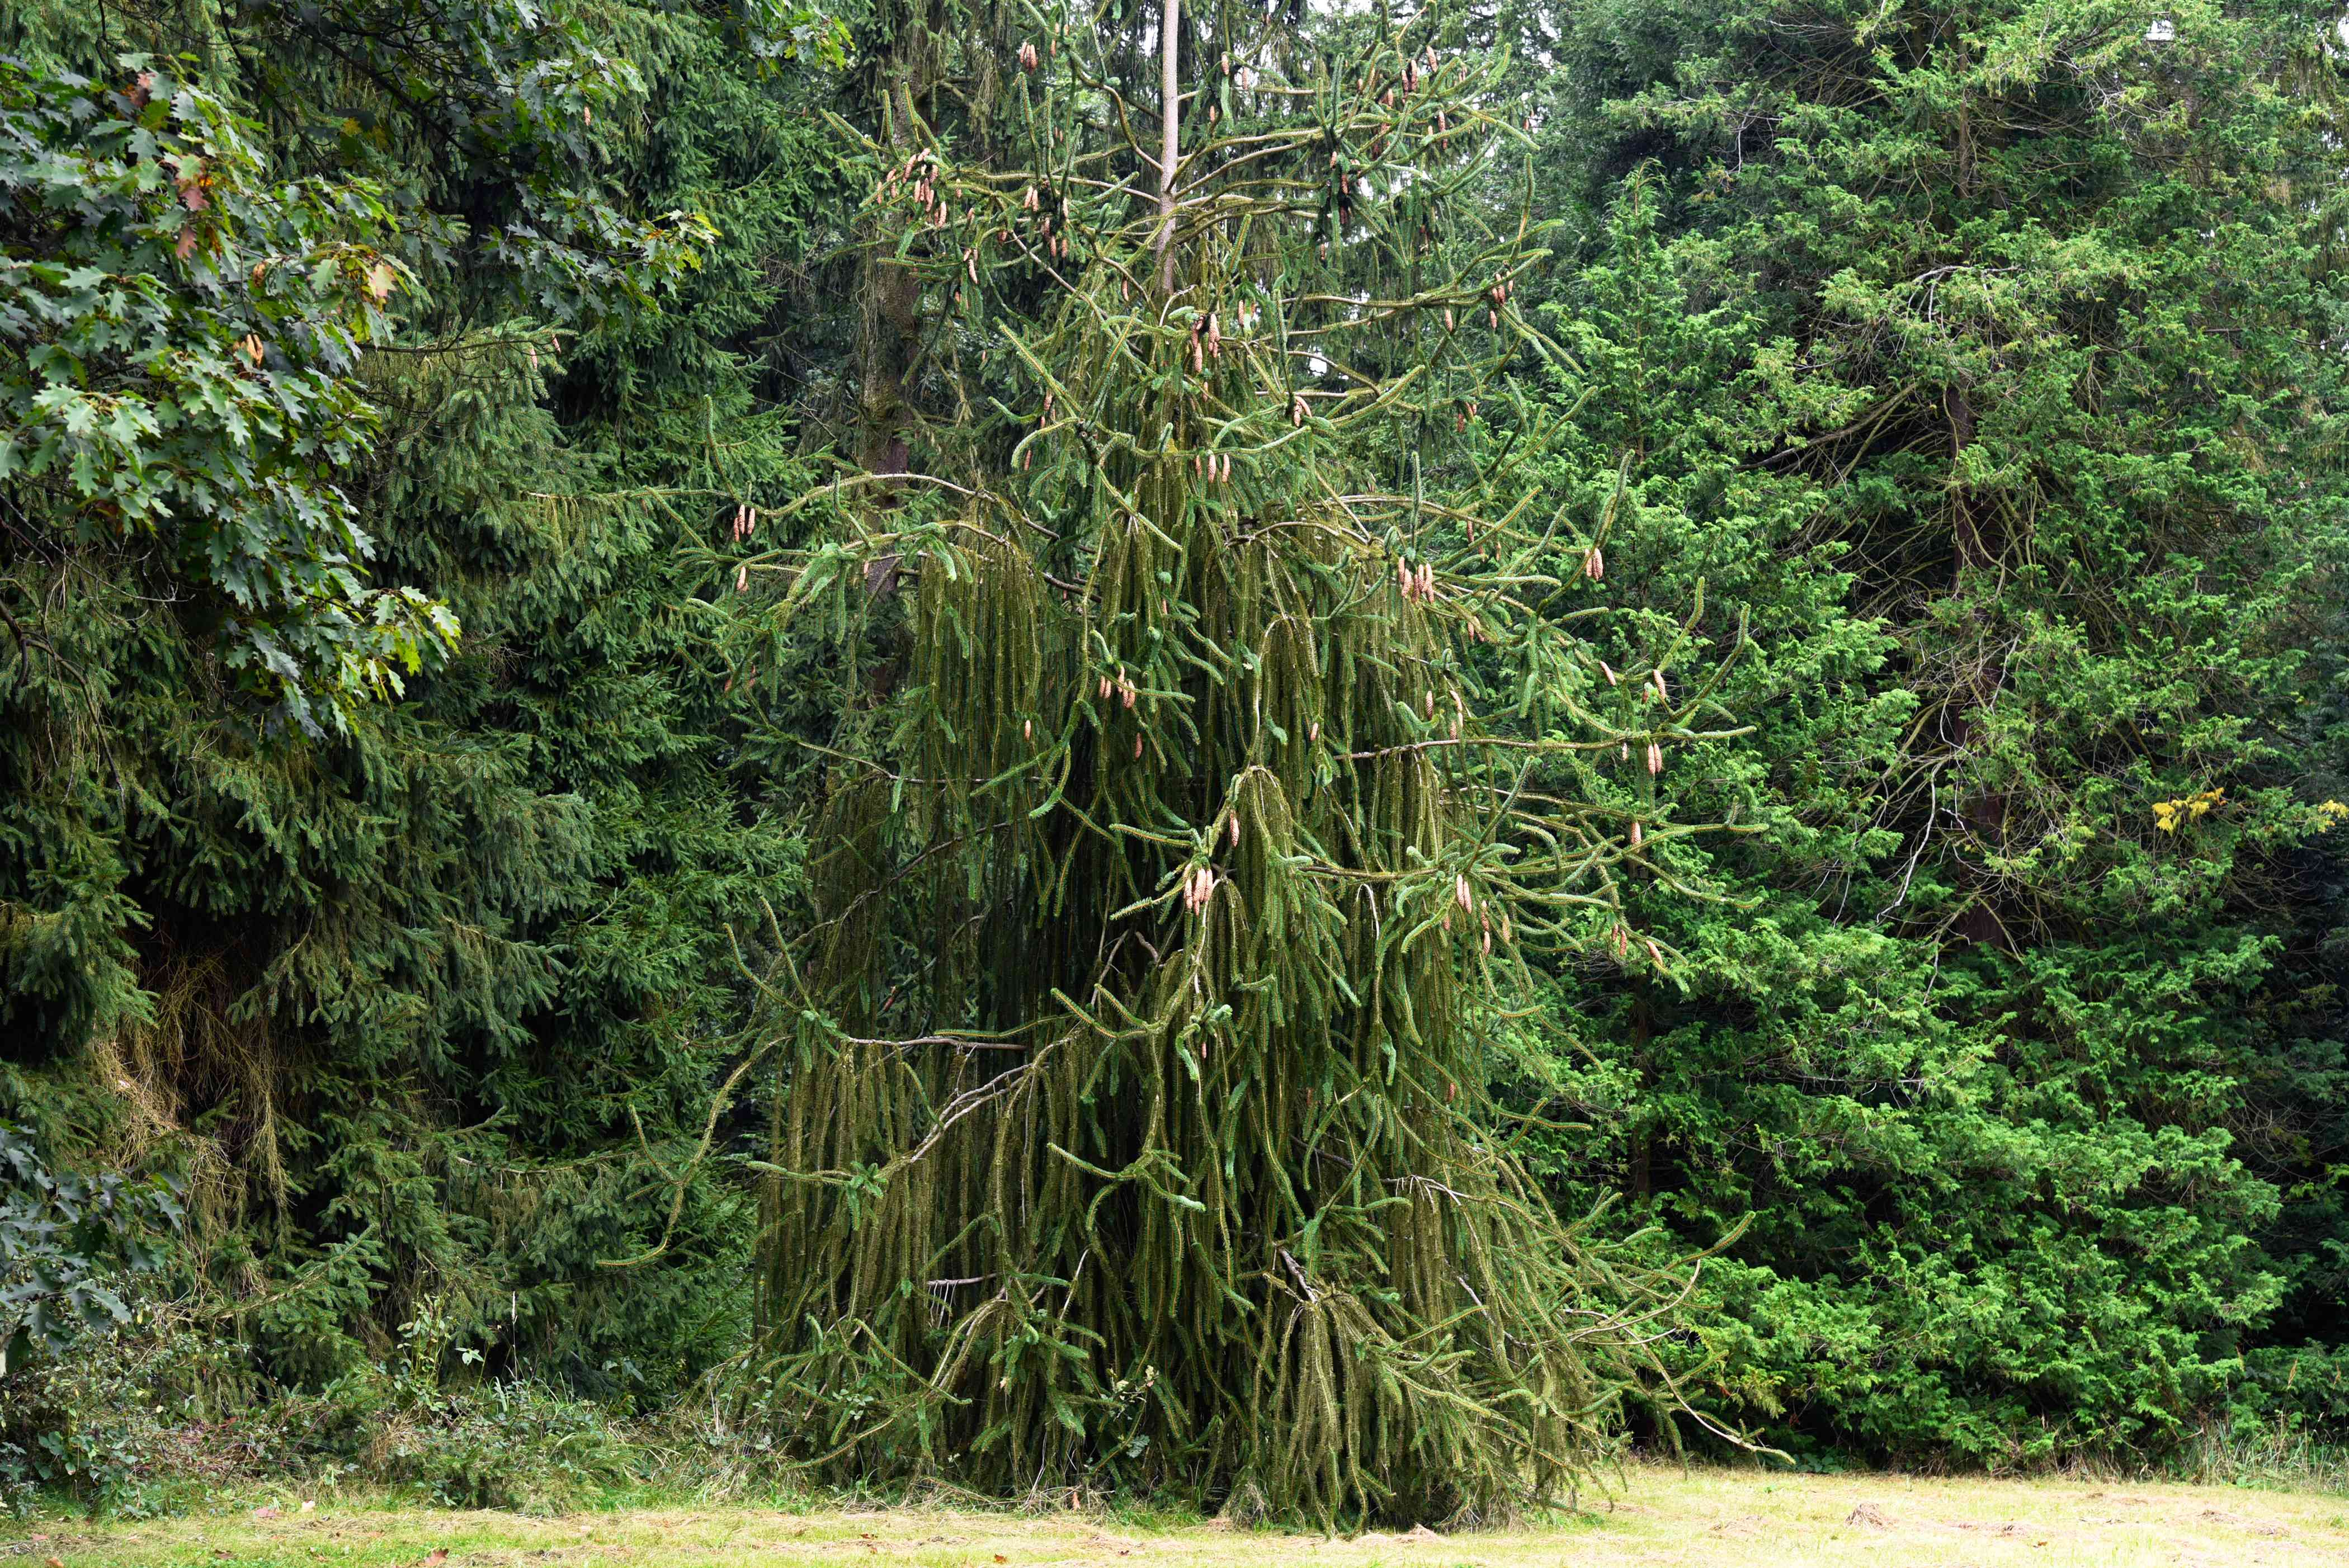 Weeping Norway spruce tree with thin extended branches with short evergreen needles hanging in wooded area